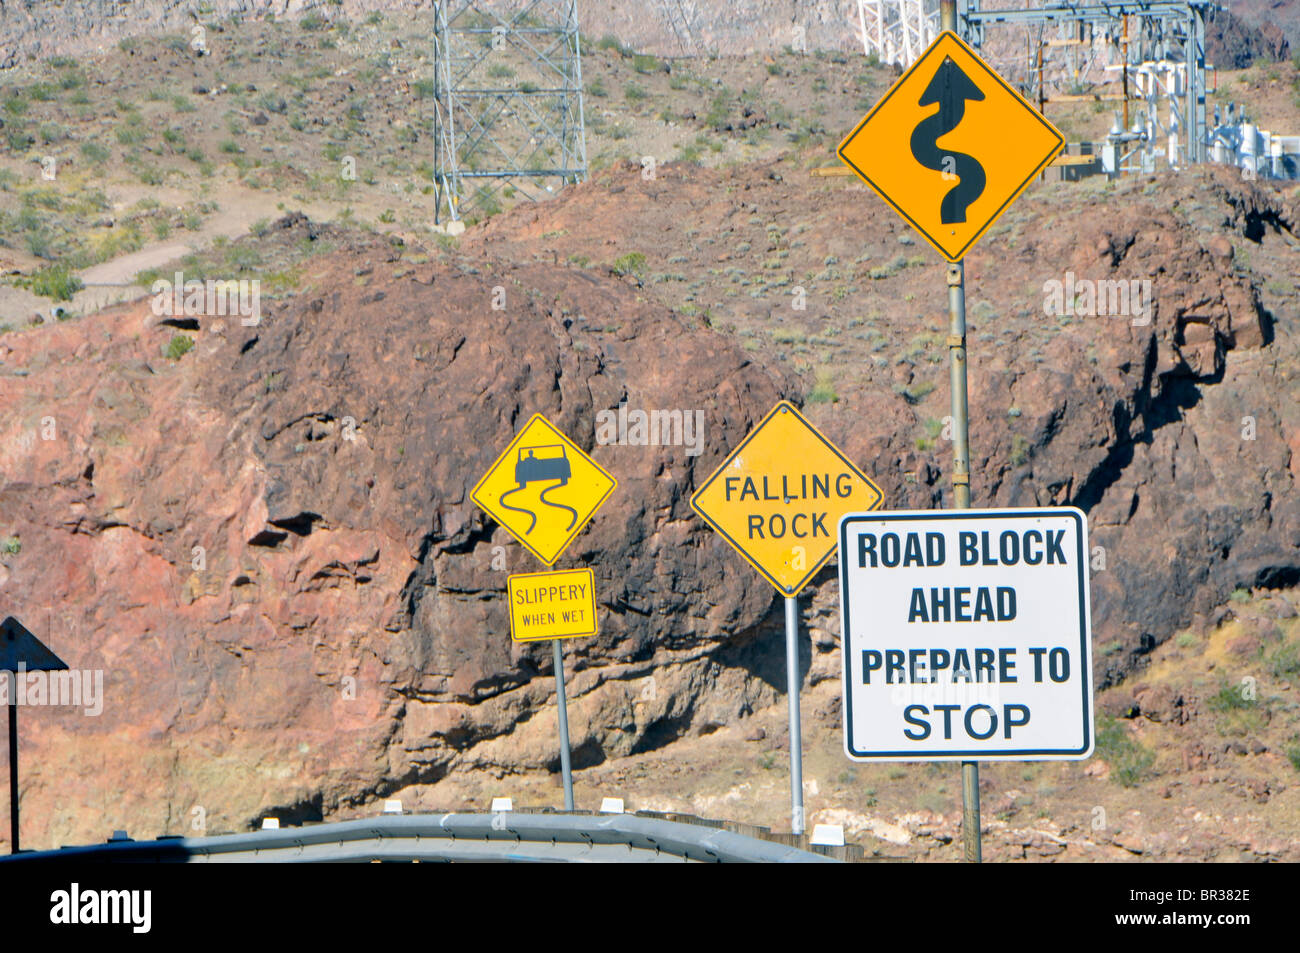 Warning Signs Us 93 At Hoover Dam Arizona Nevada Stock. Practice Option Trading Efirstbank Mobile App. York College Masters Programs. Spanish For Grandmother Nashua Tire Wholesale. International Removal Company. Medical Assistant Associate Degree. What Do You Mean By Domain Work Retreat Ideas. Sports Psychologist Salary Move To Argentina. Los Angeles Pet Sitters Film Schedule Template